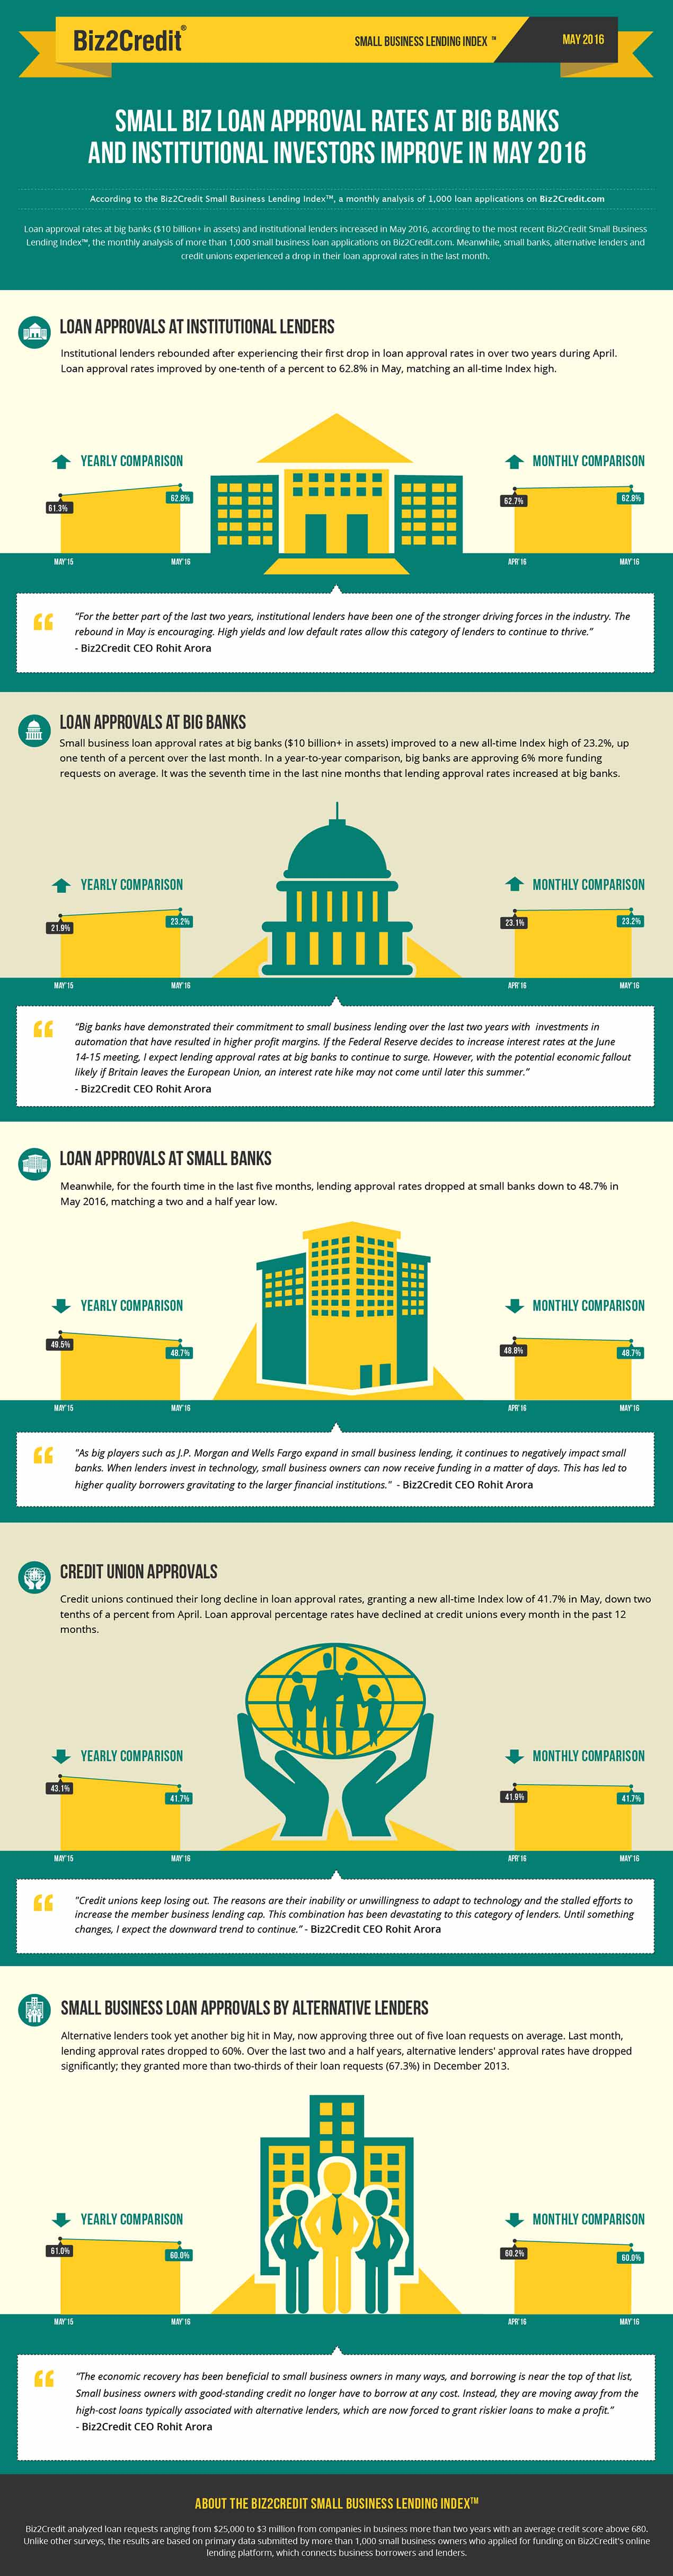 may16 Lending Index Infographic